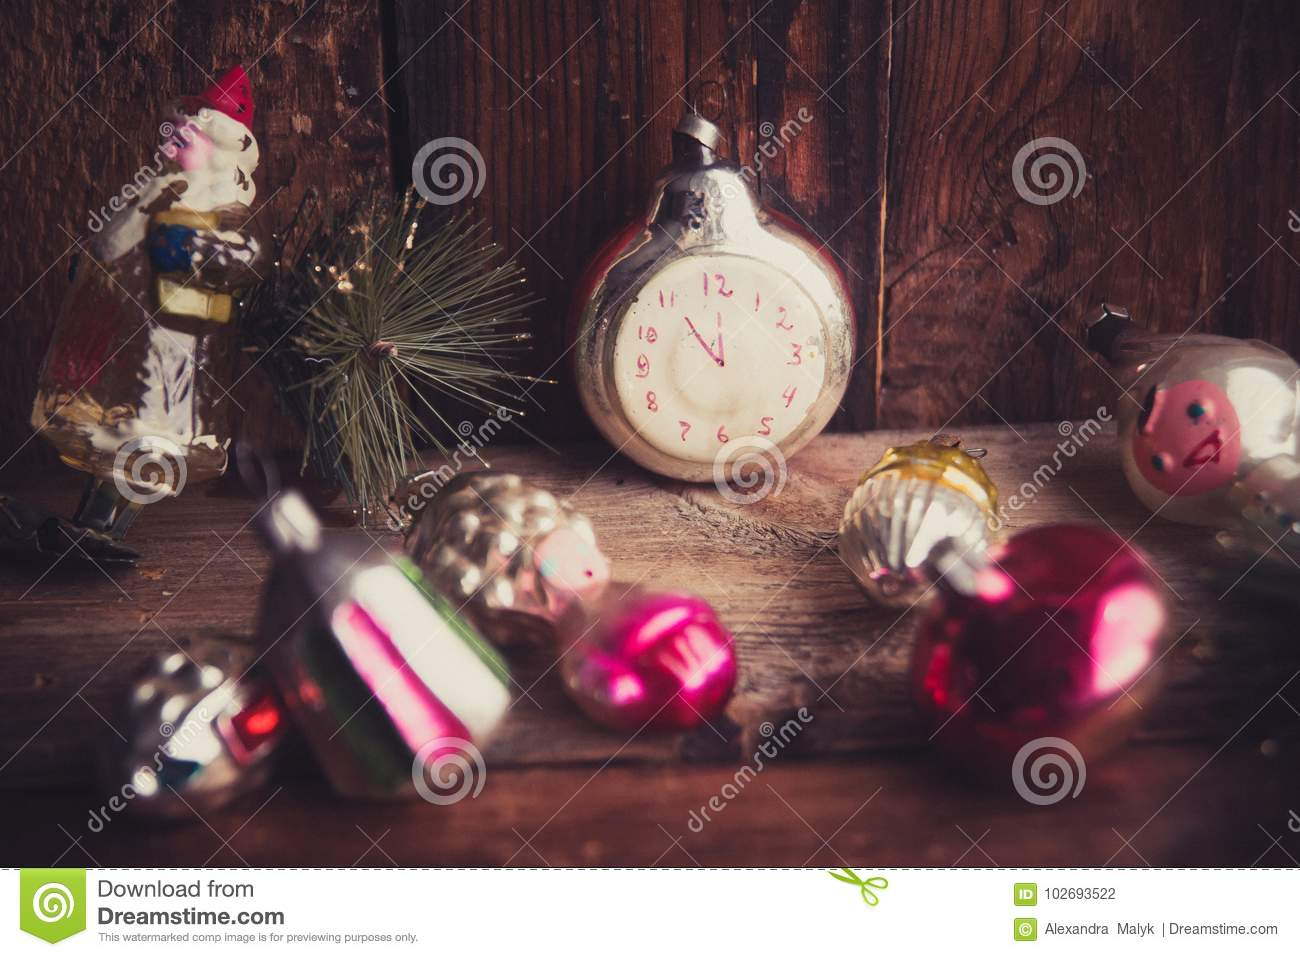 Old Fashioned Christmas Tree Decorations.Retro Alarm Clock Vintage Leather Suitcases Old Fashioned